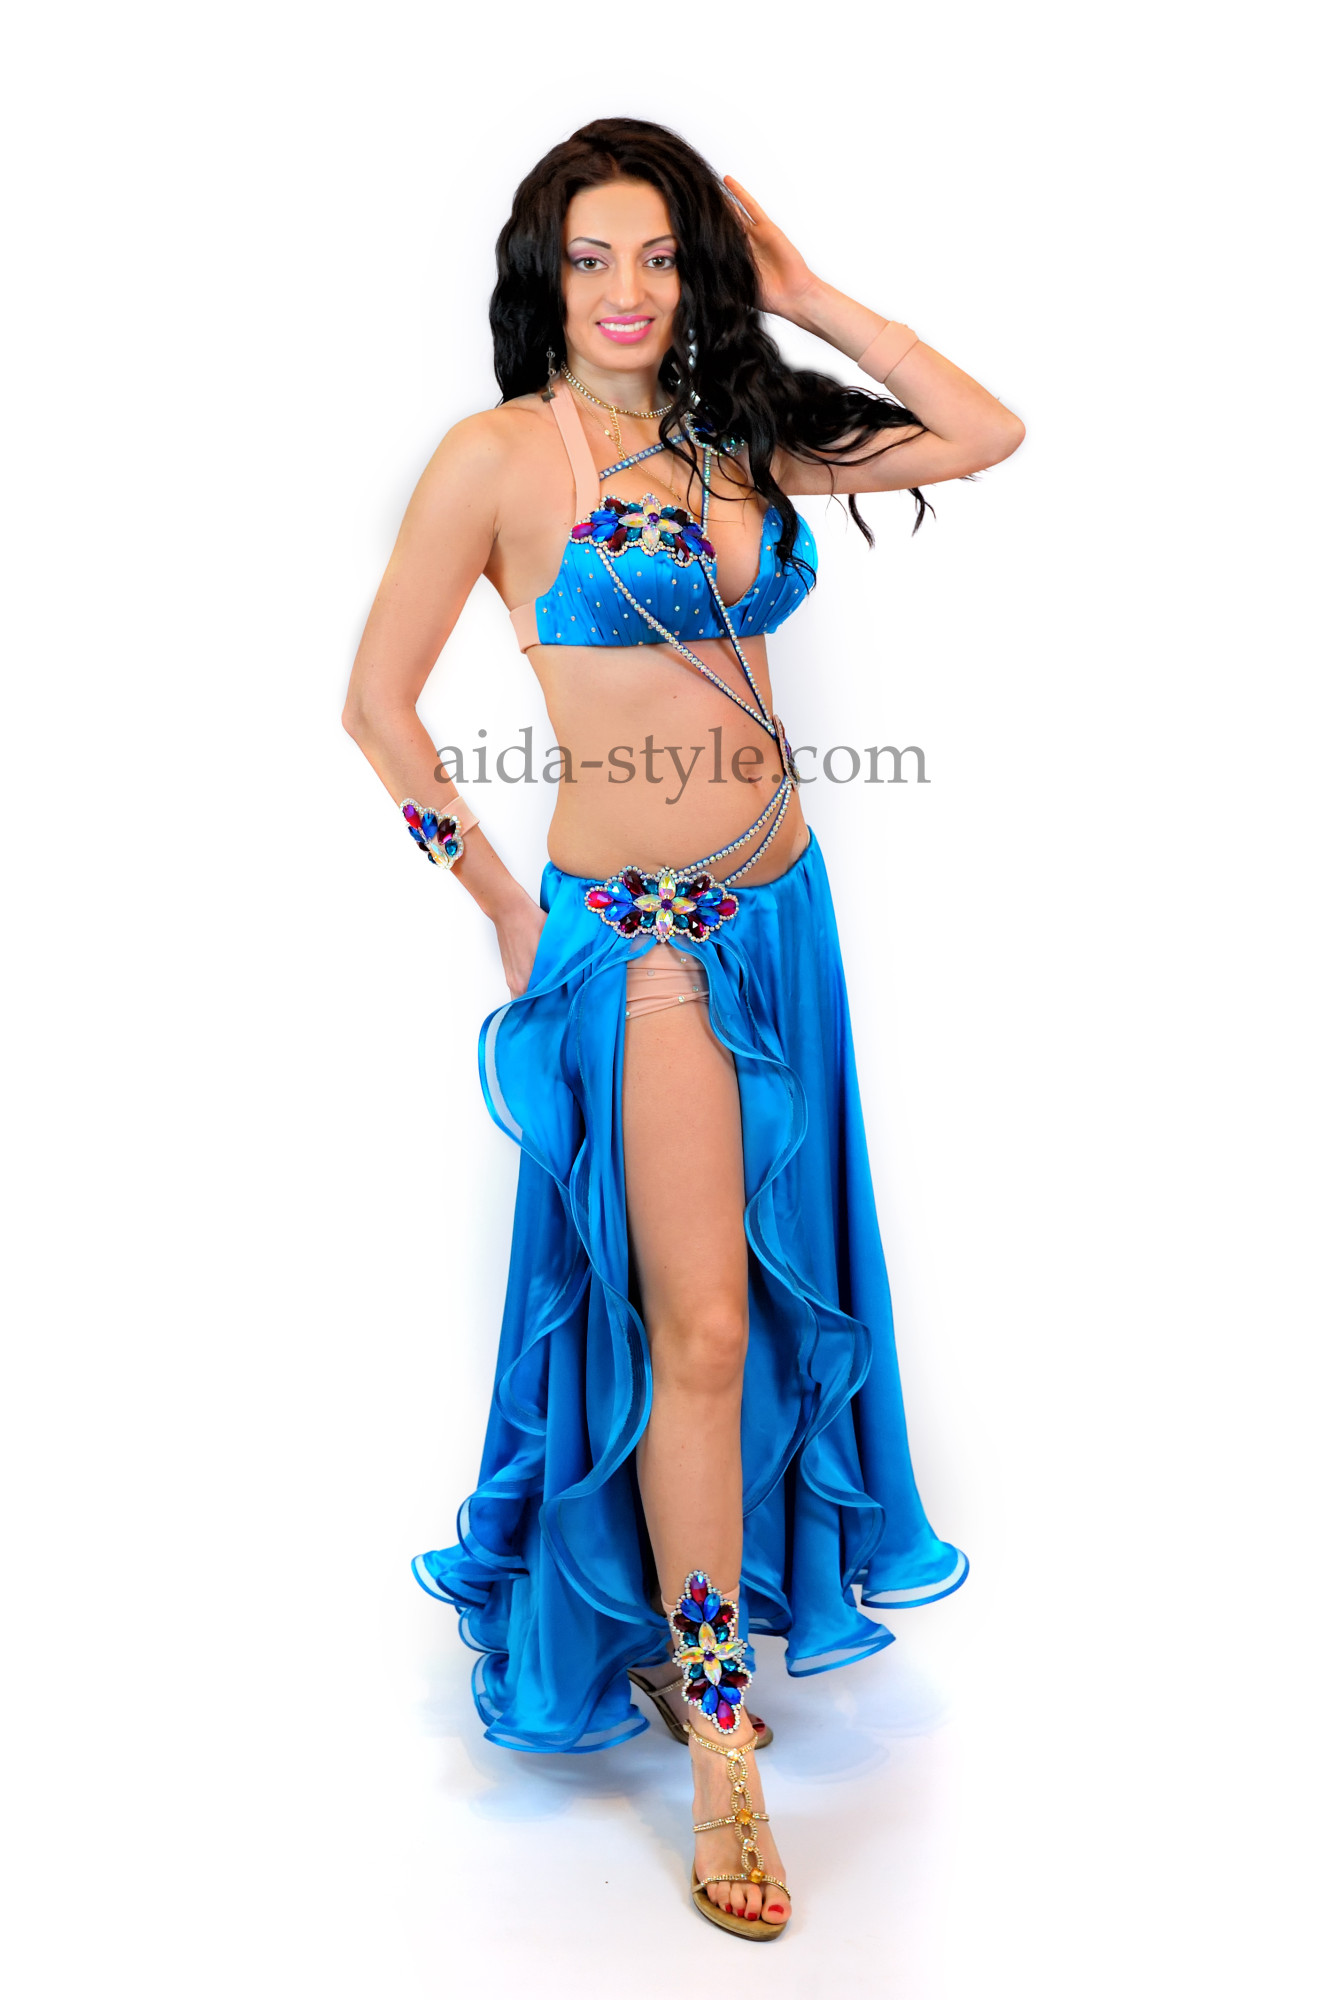 Bright blue professional belly dance costume with flowers from stones on the right hip and on the bra. The skirt has cut on the right side